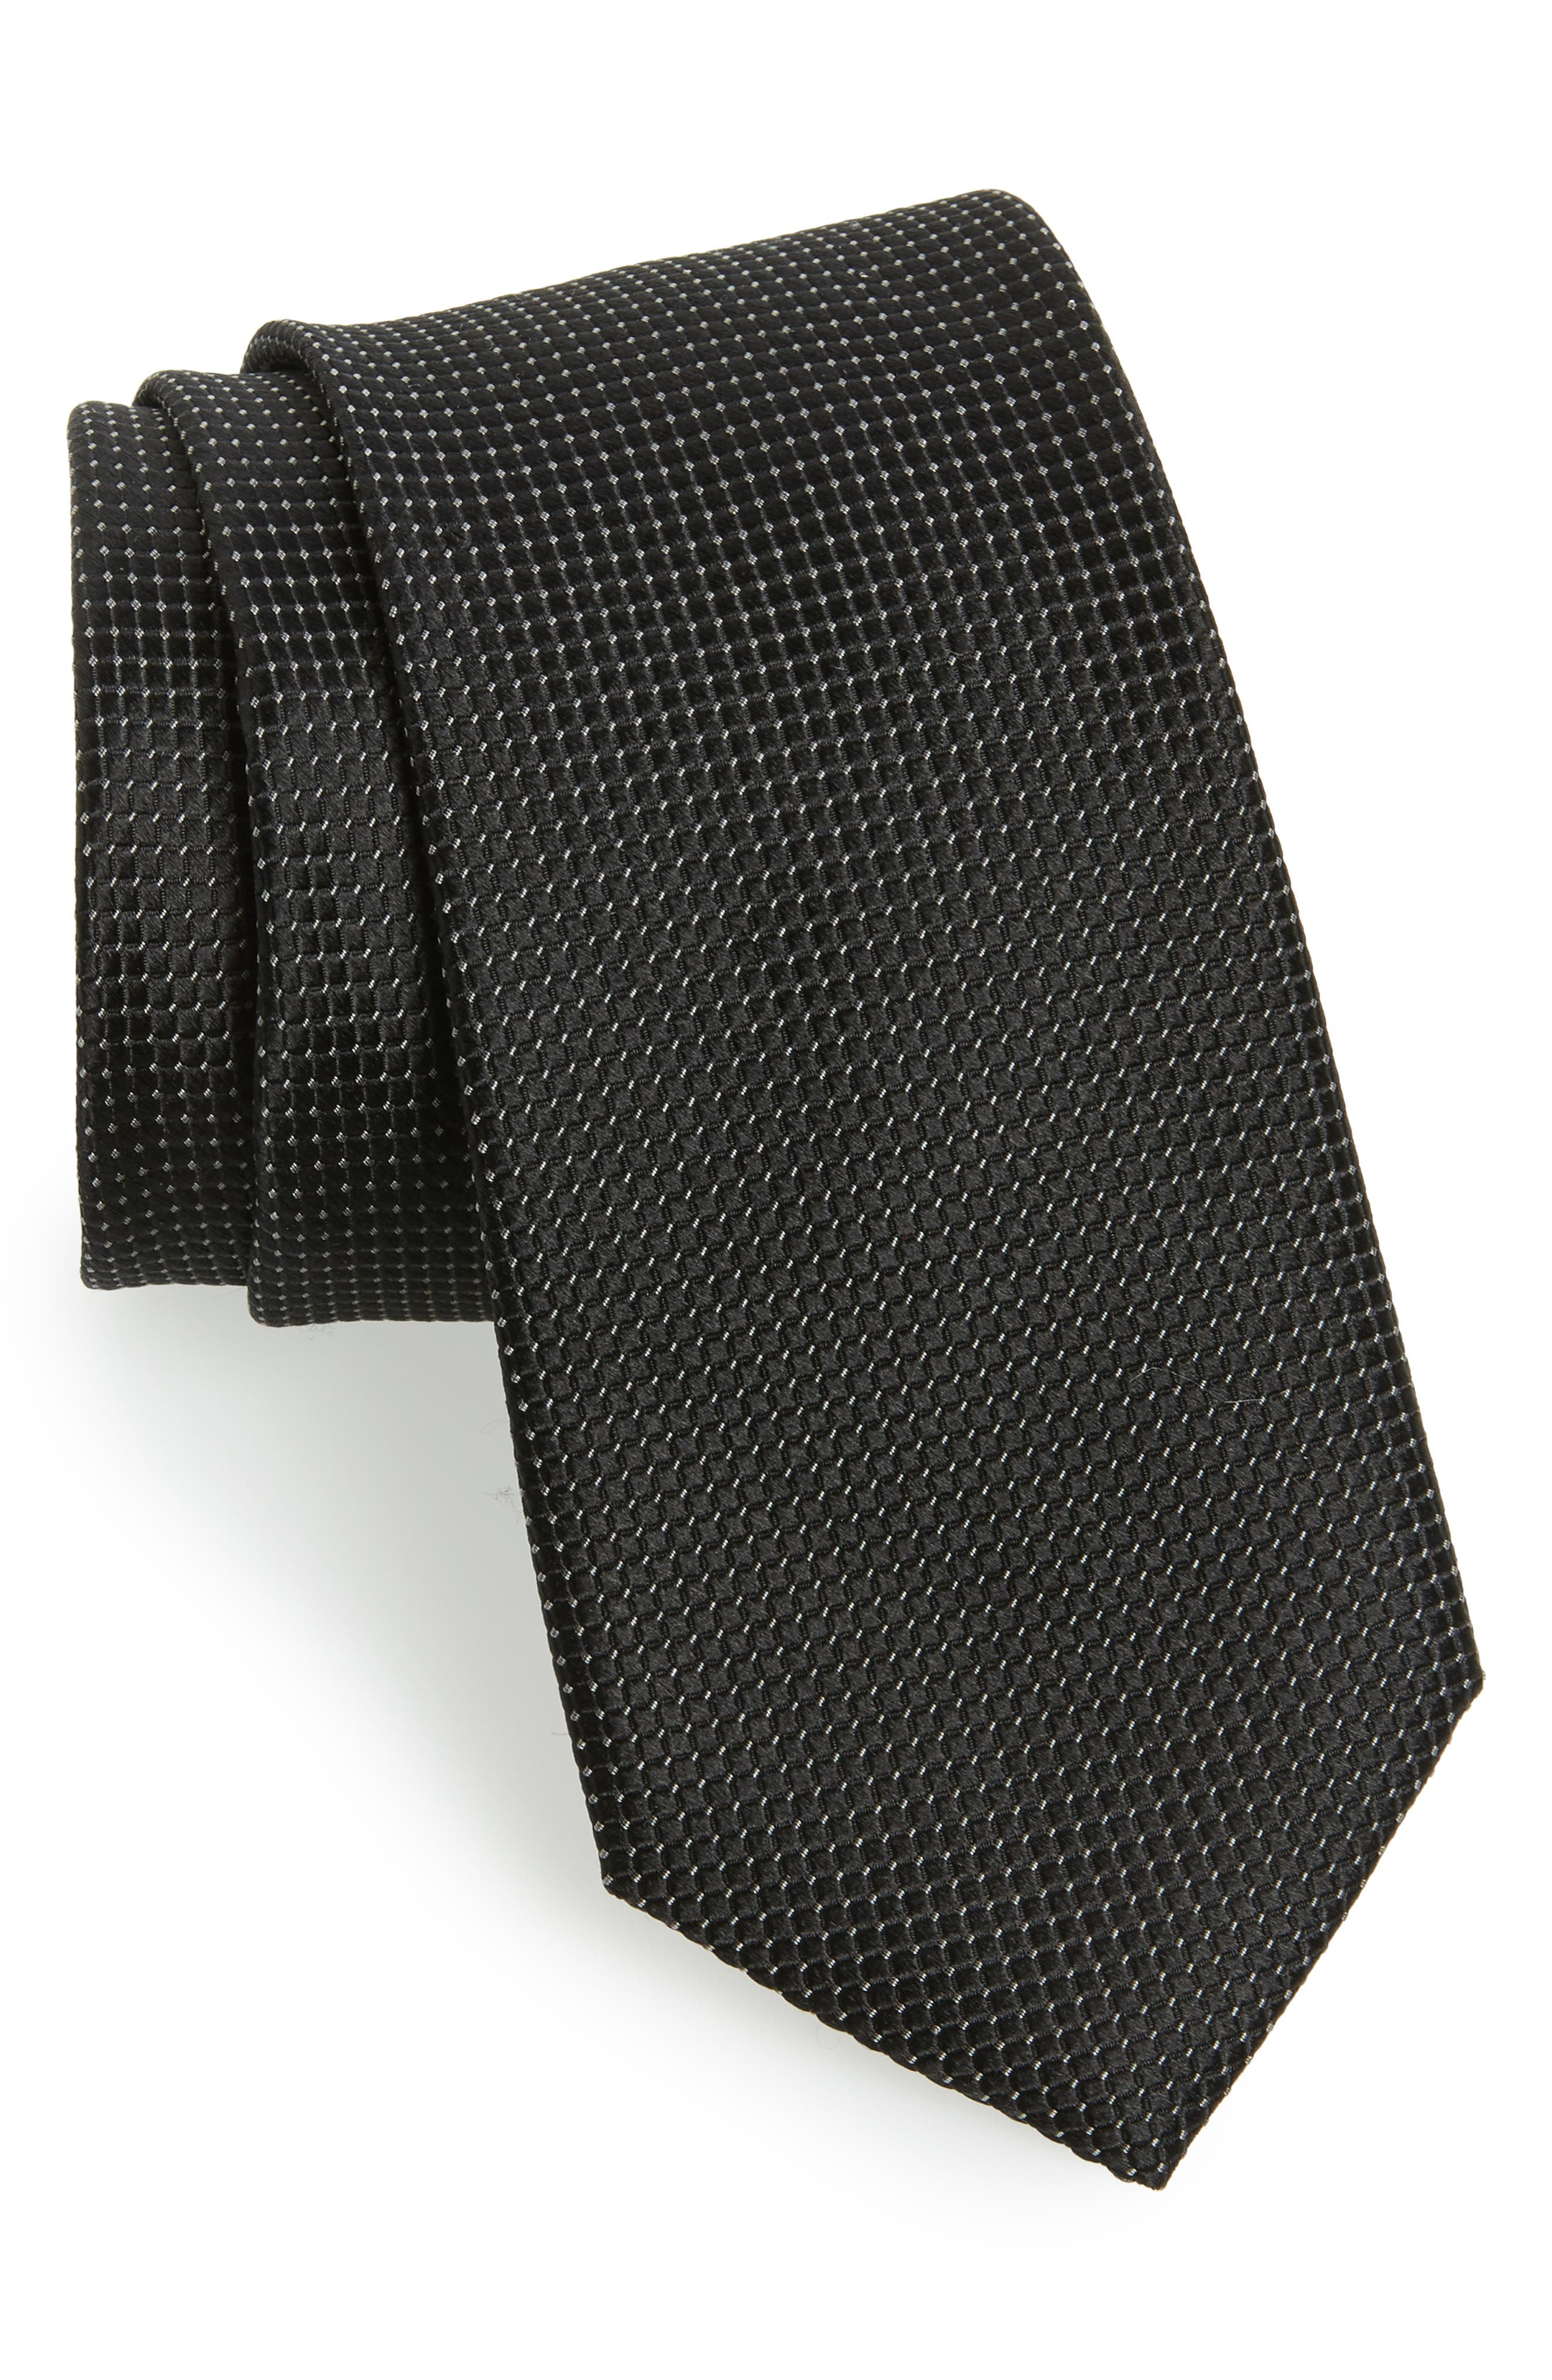 TED BAKER LONDON,                             Solid Silk Tie,                             Main thumbnail 1, color,                             BLACK